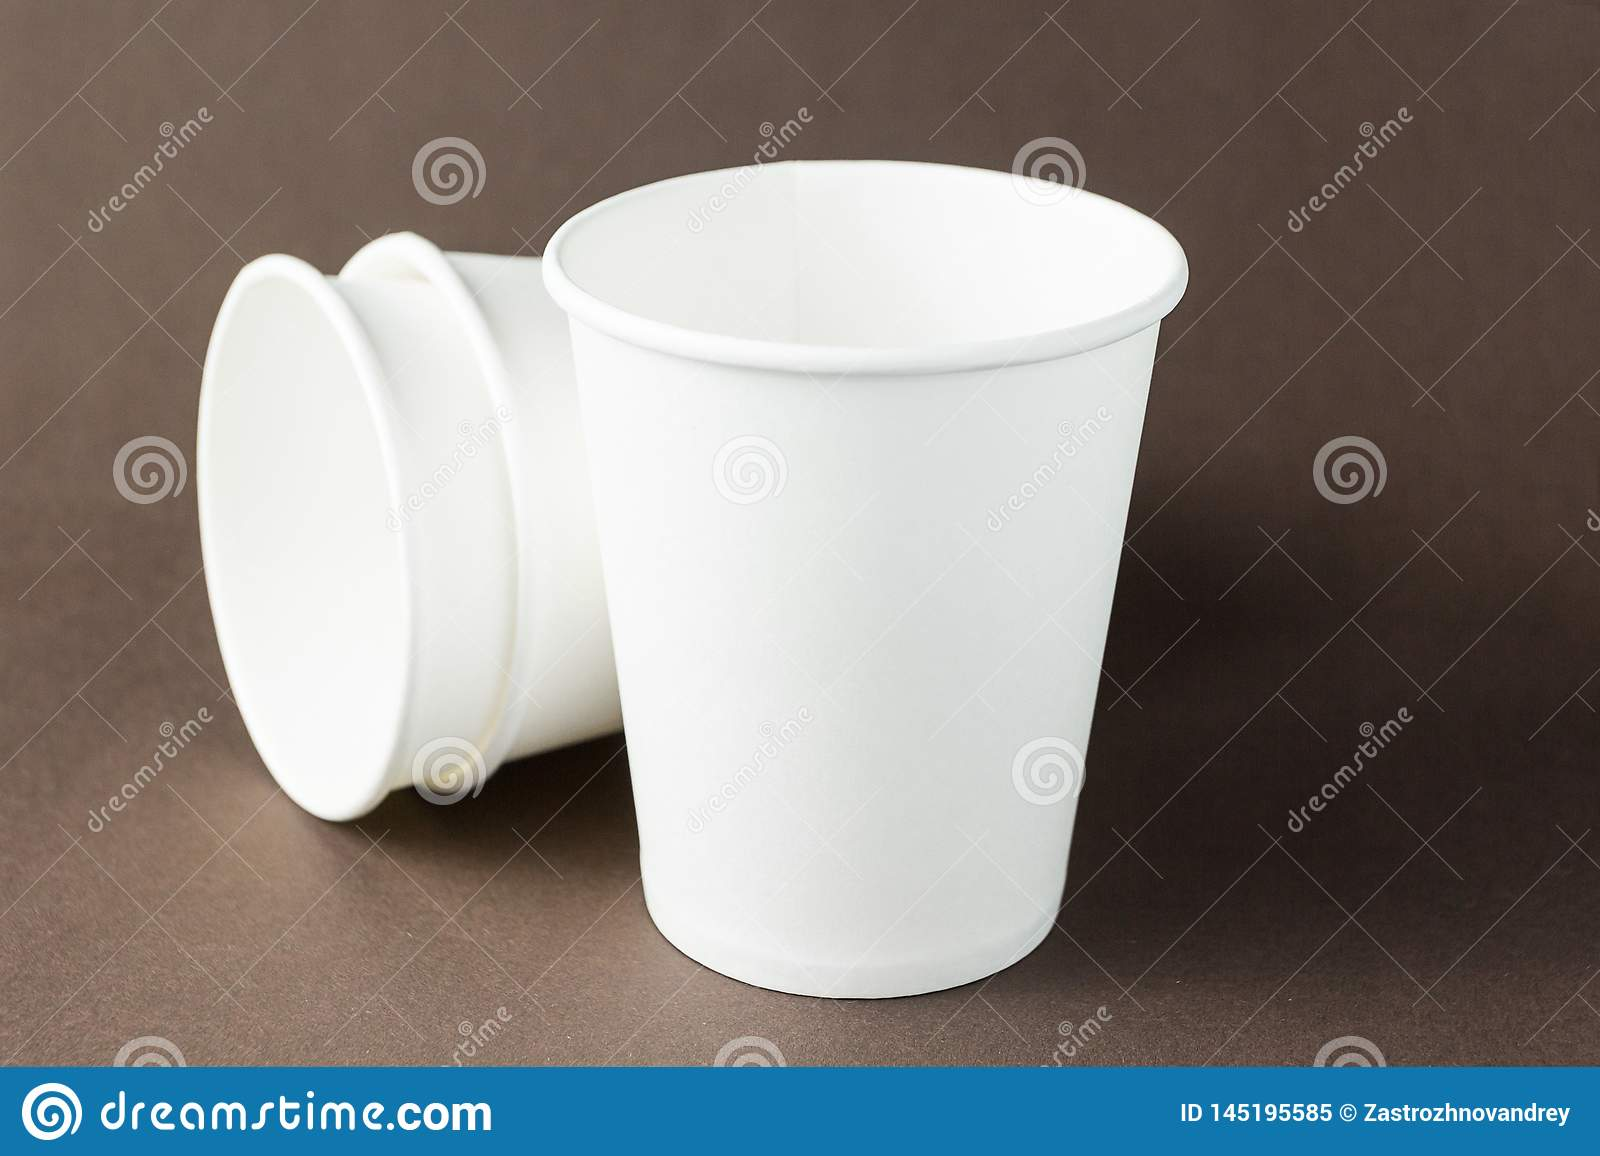 White paper cups mockup on brown background, space for text or label